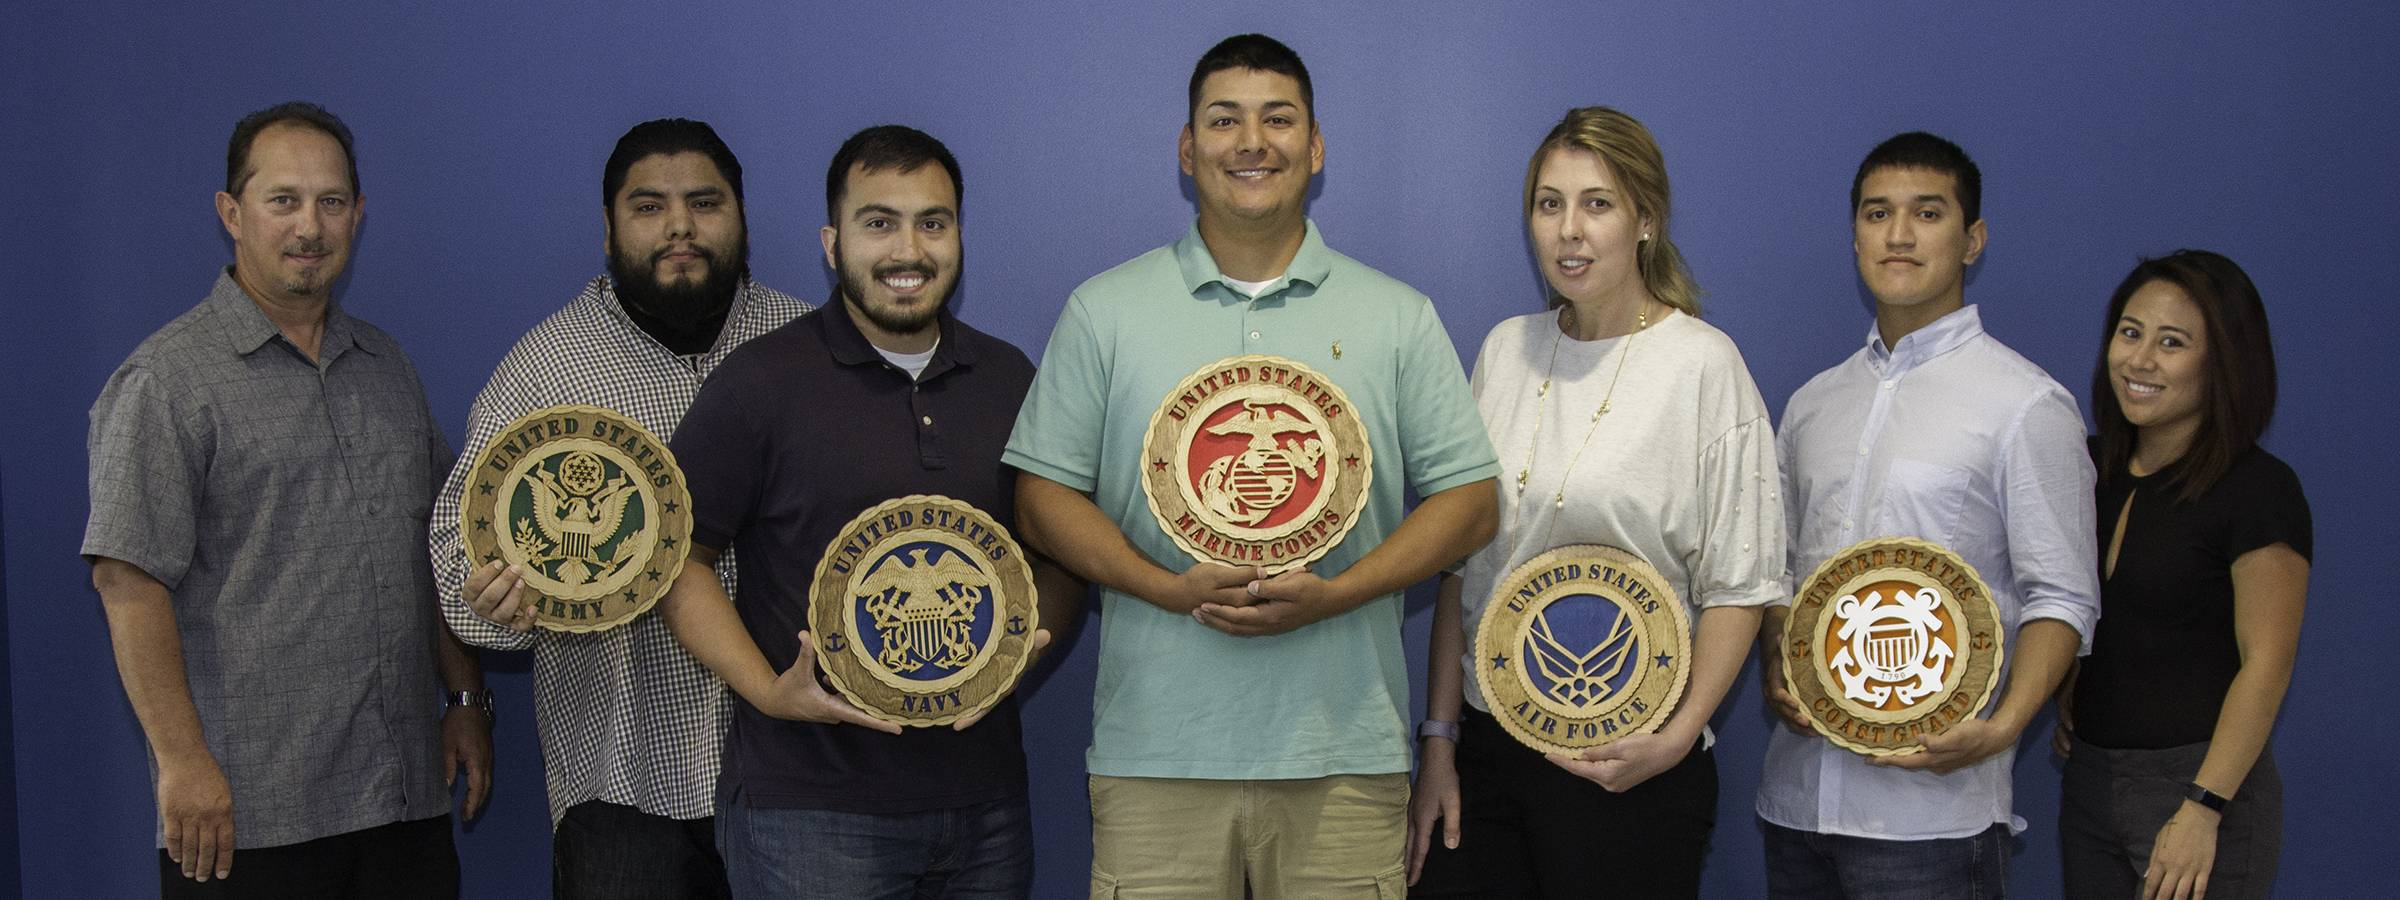 The College of Lake County Veterans Student Services staff have worked to offer peer mentoring as well as relaunched its Student Veterans Club.